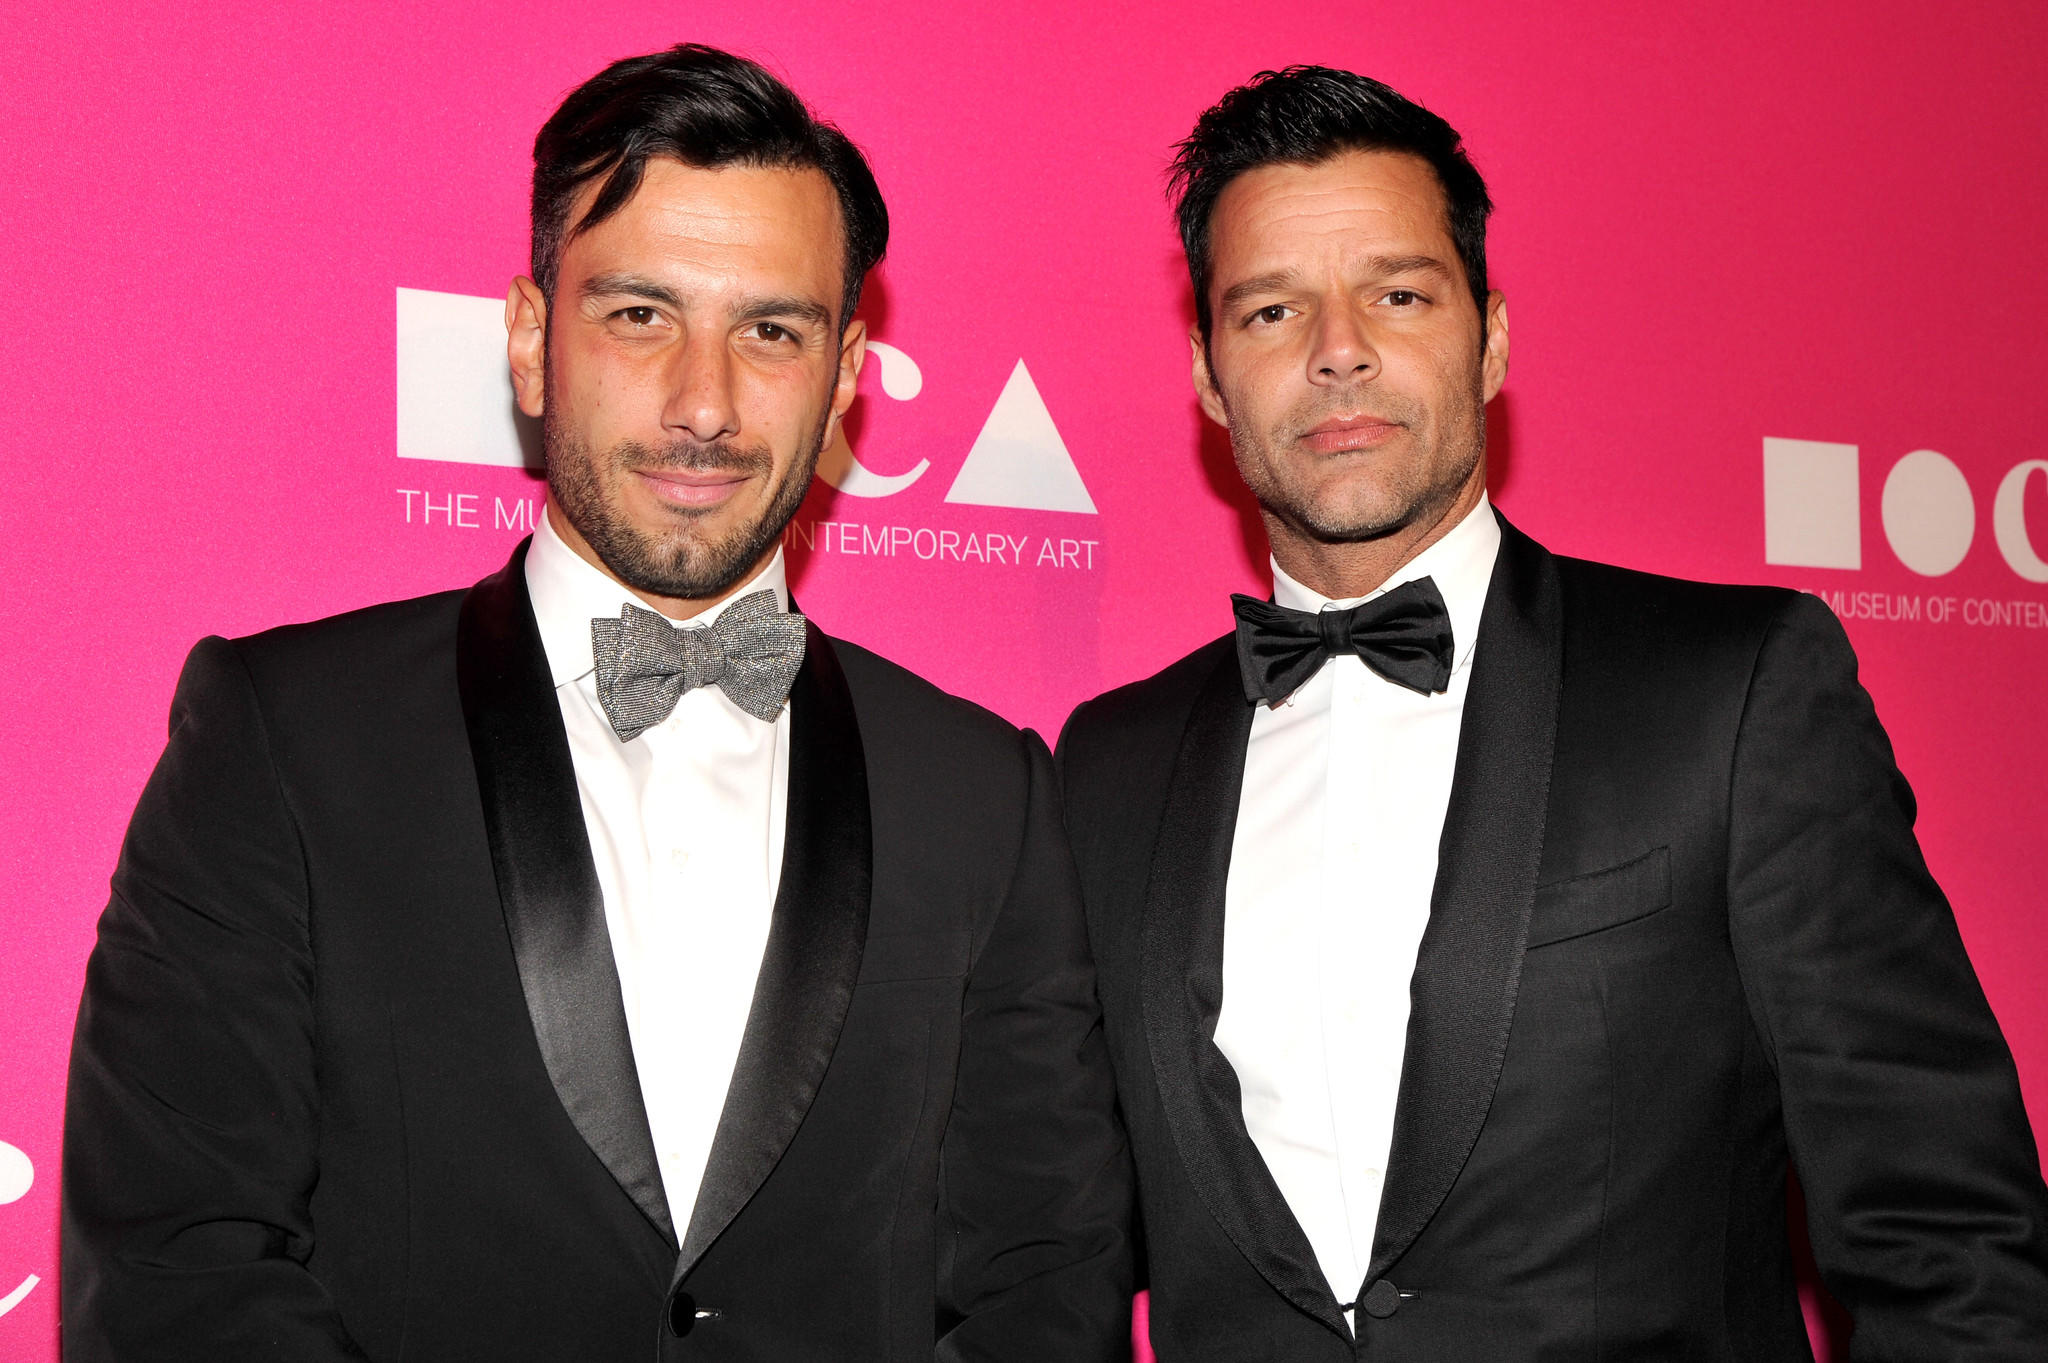 Artist Jwan Yosef and singer Ricky Martin (John Sciulli / Getty Images for MOCA)